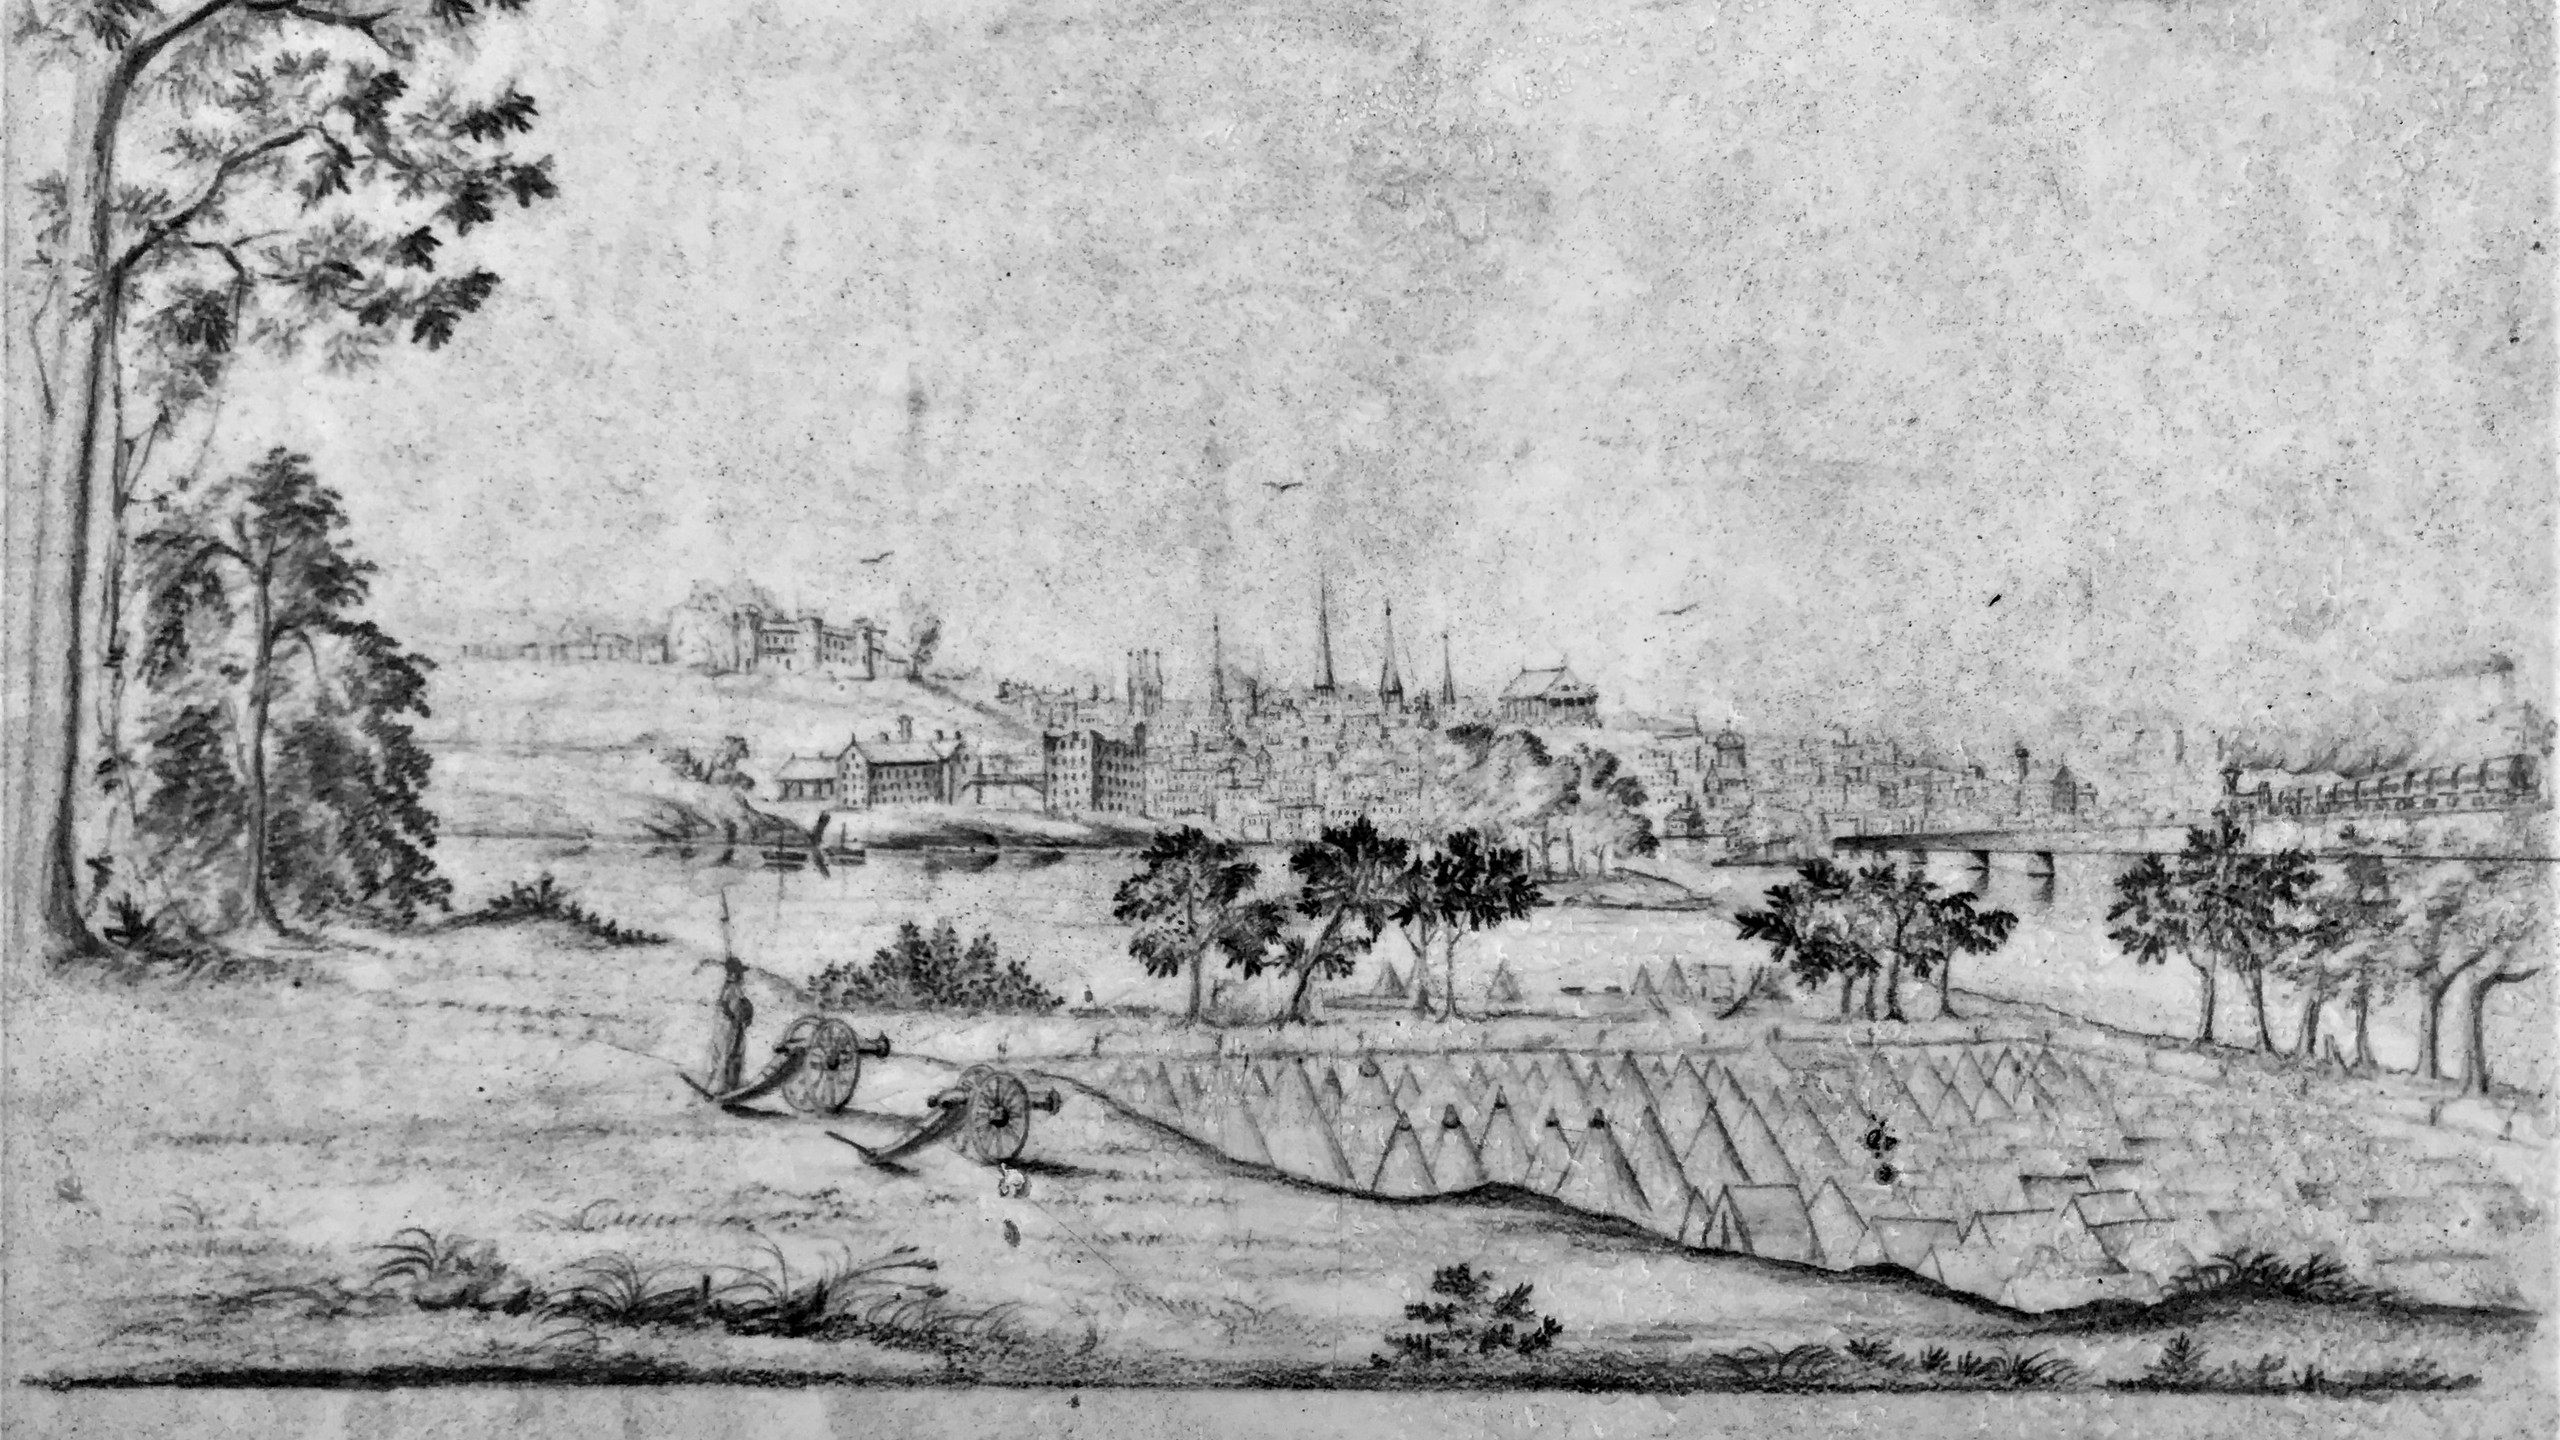 POW Drawing of the Camp